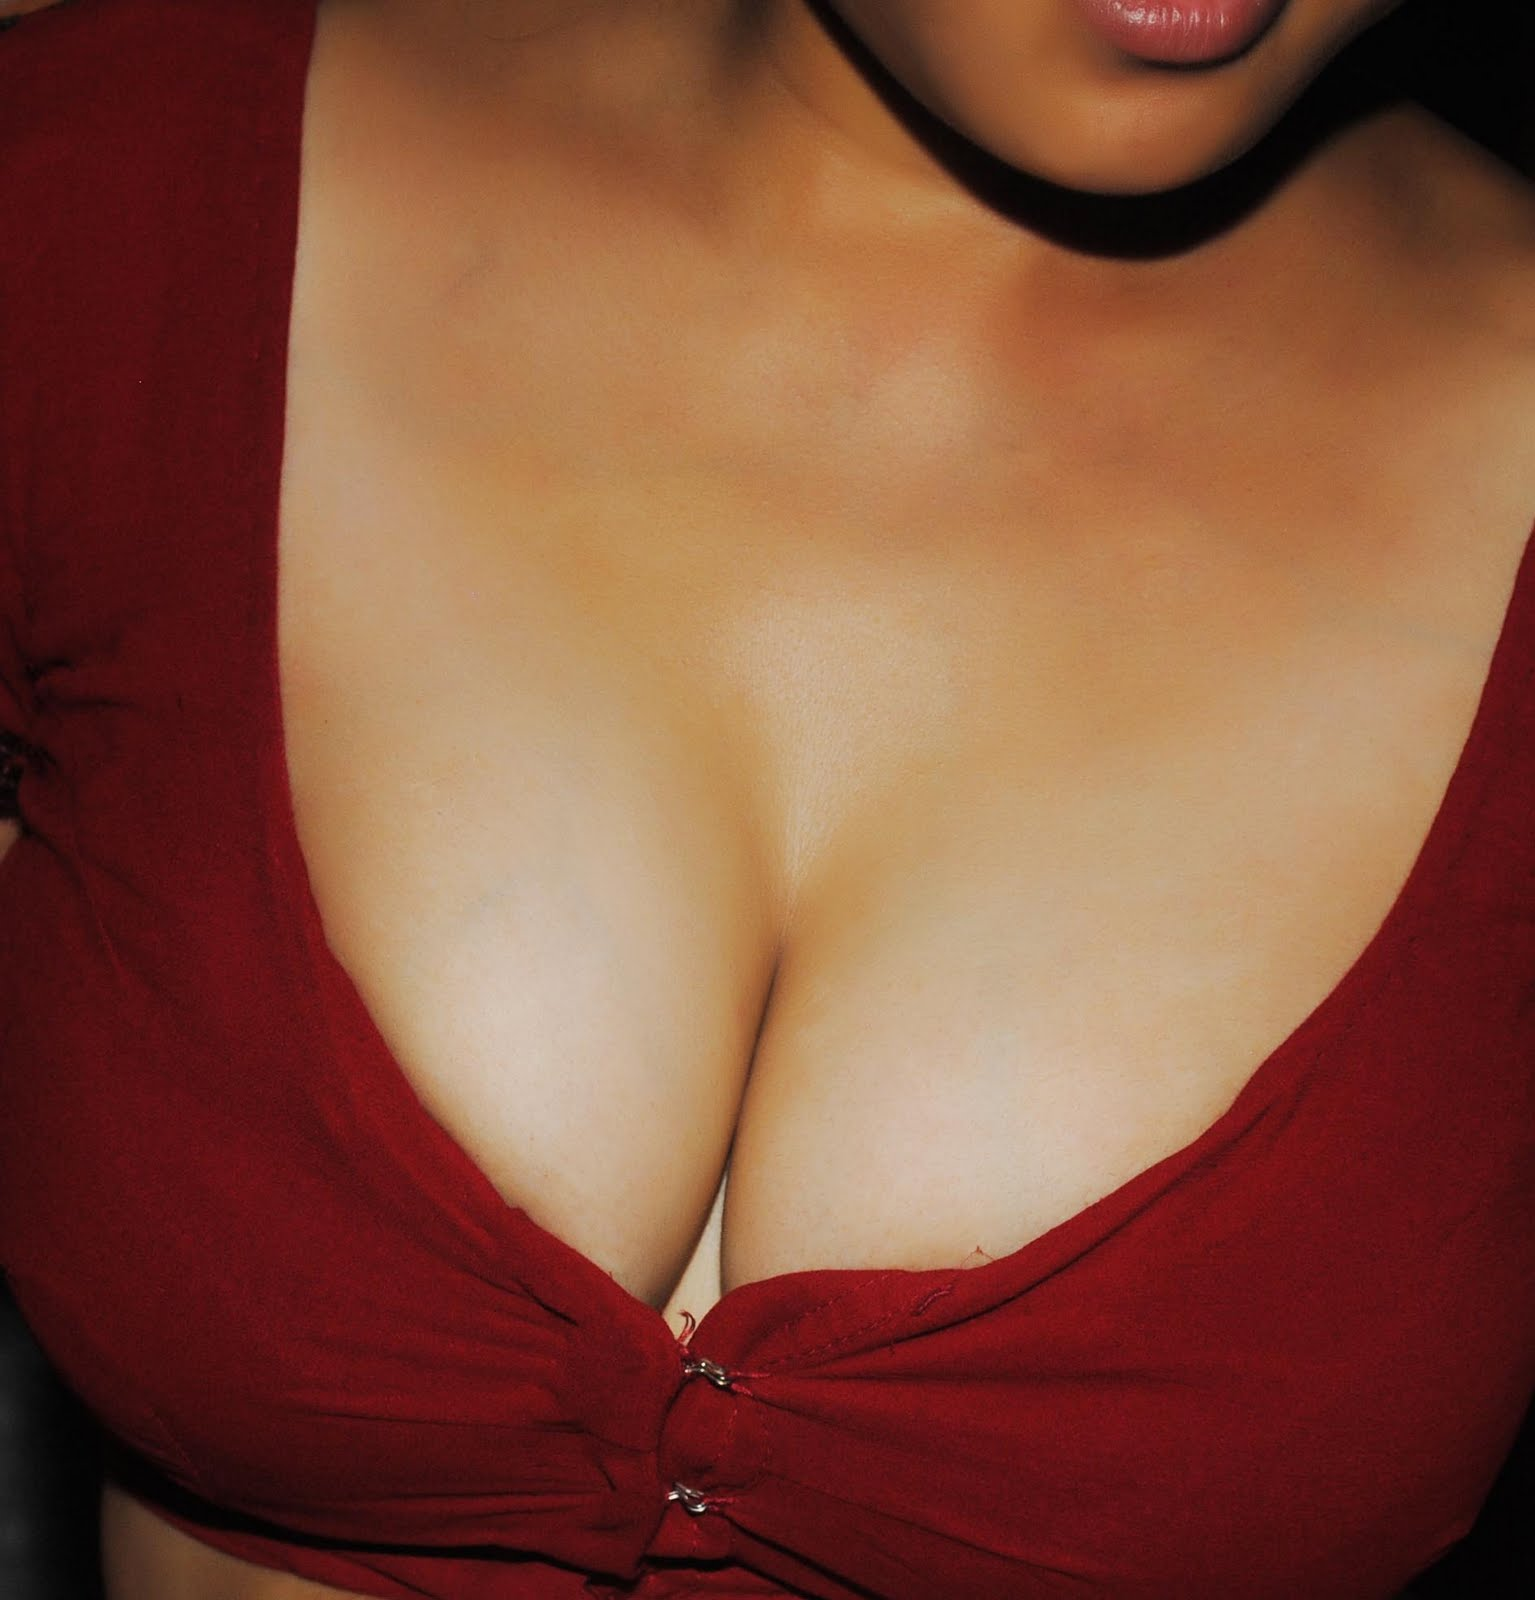 Big Boobs Indian Girl Nri Rihanna See